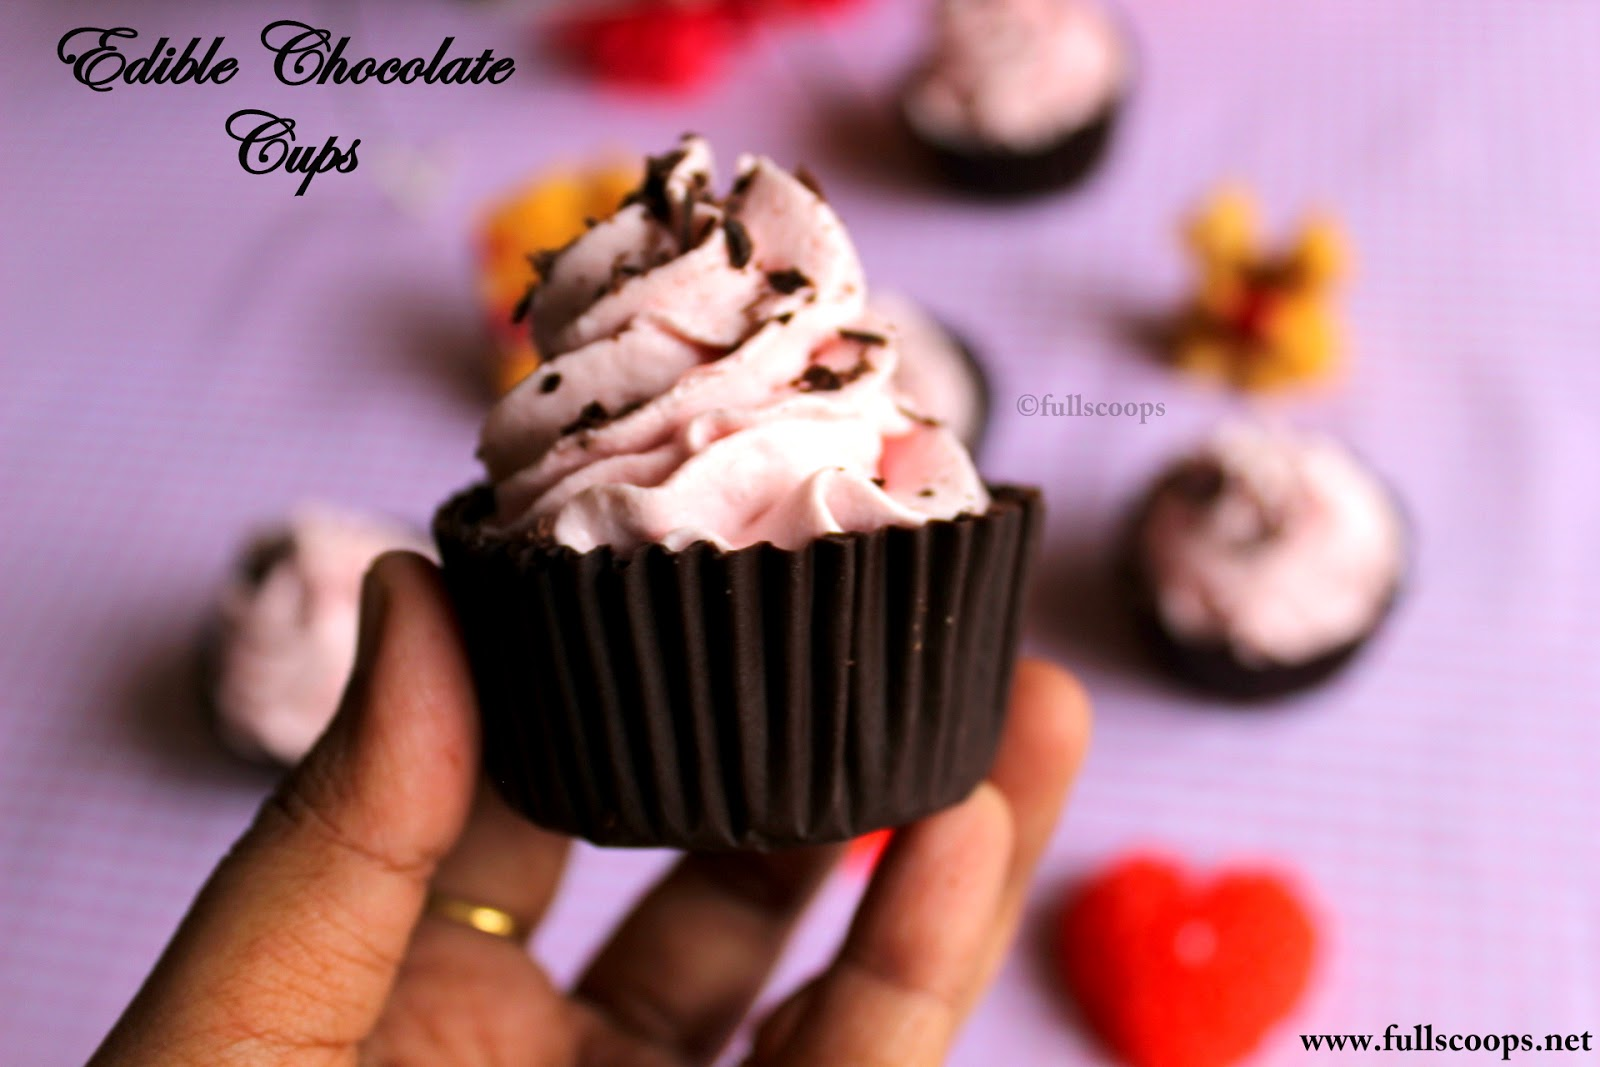 Edible Chocolate Cups